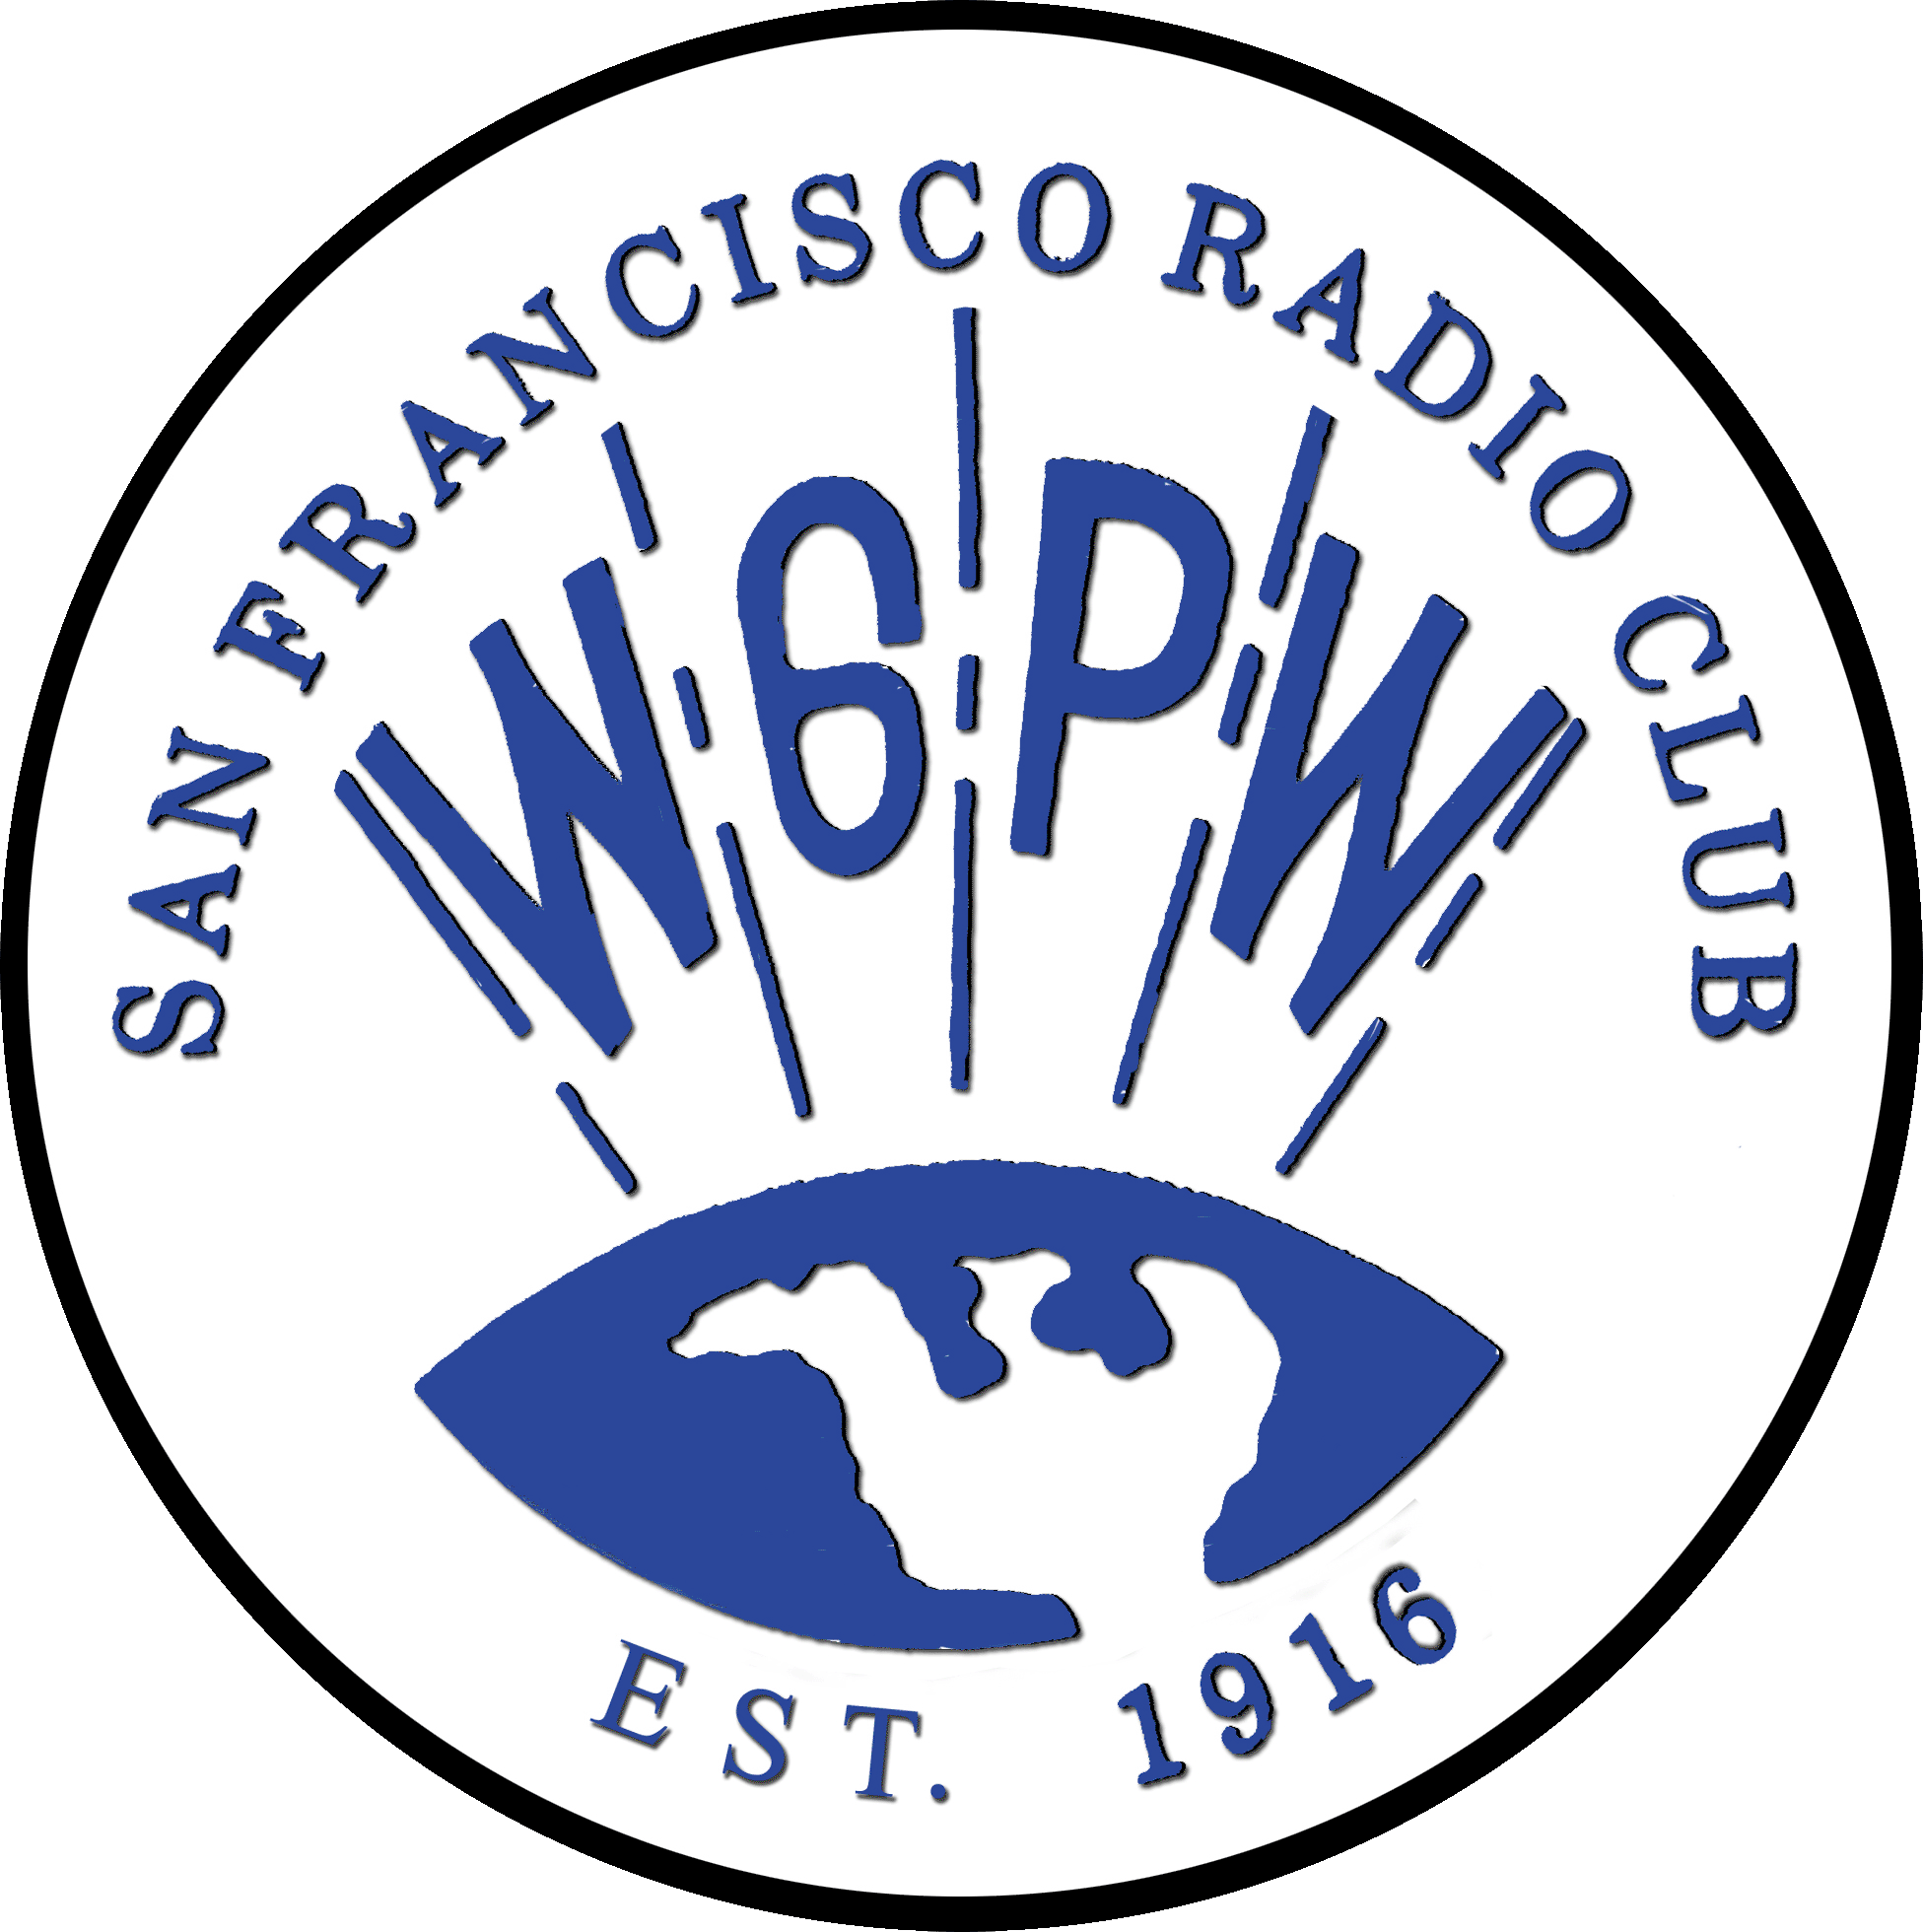 ARRL Clubs - SAN FRANCISCO AMATEUR RADIO CLUB INC.